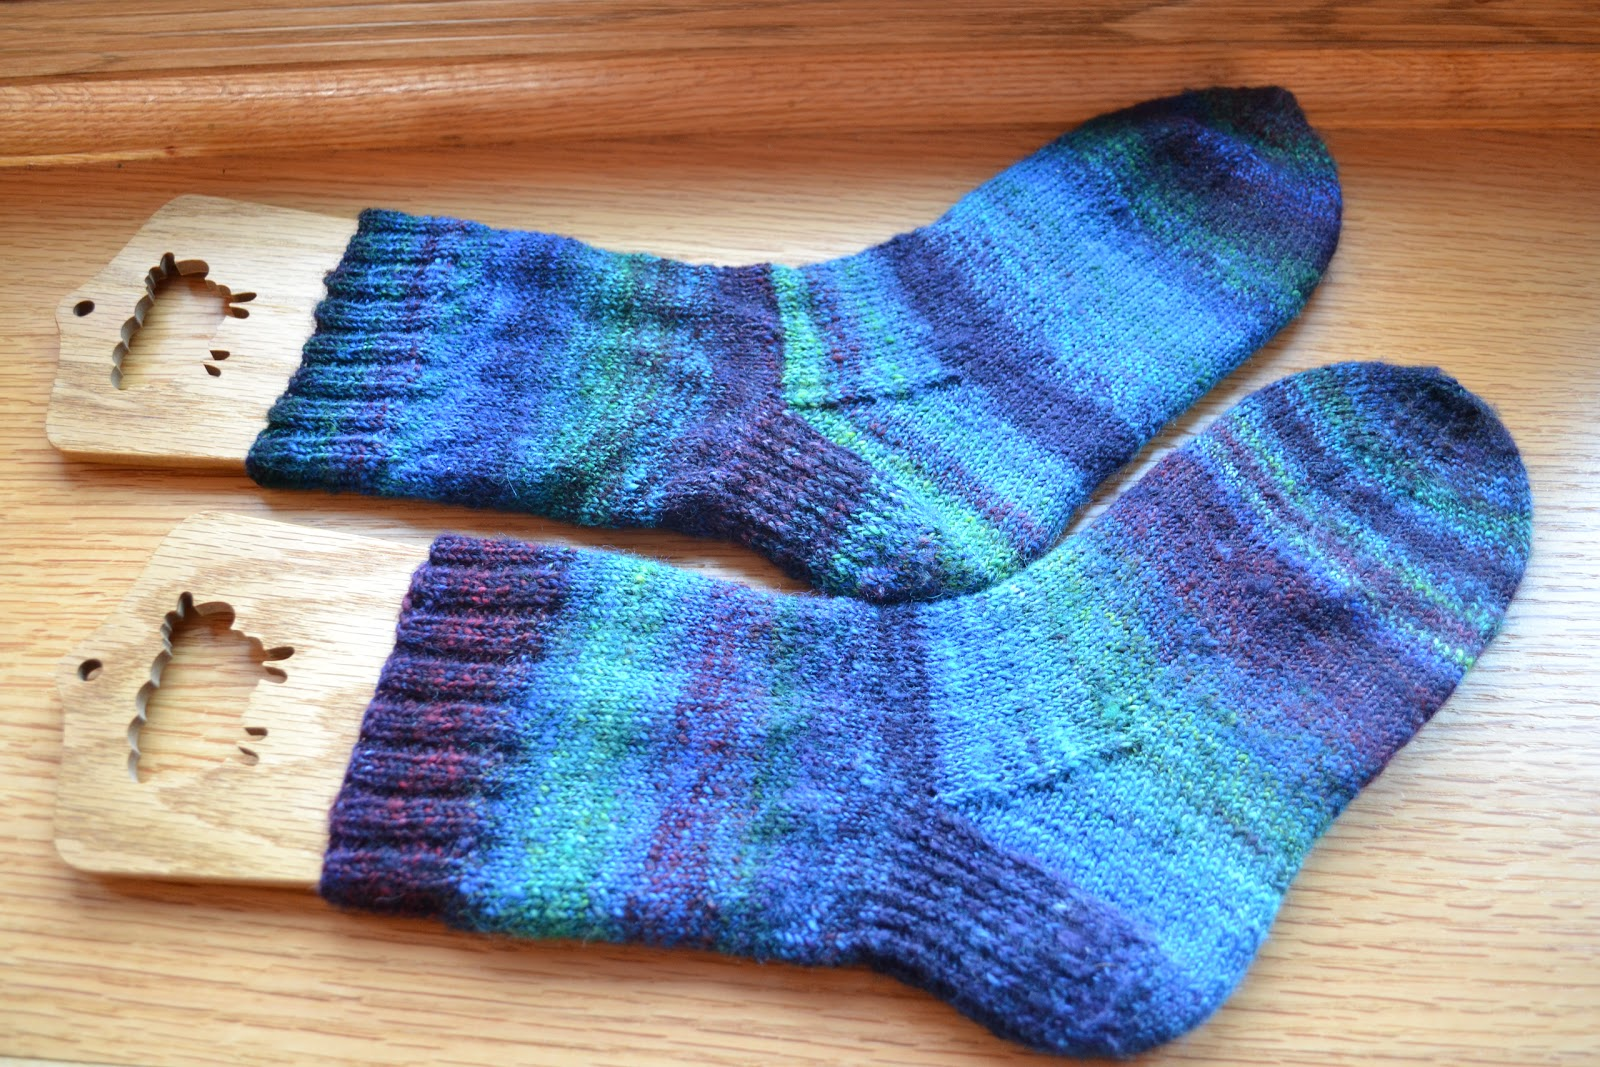 How to knit socks: step by step instruction for beginners